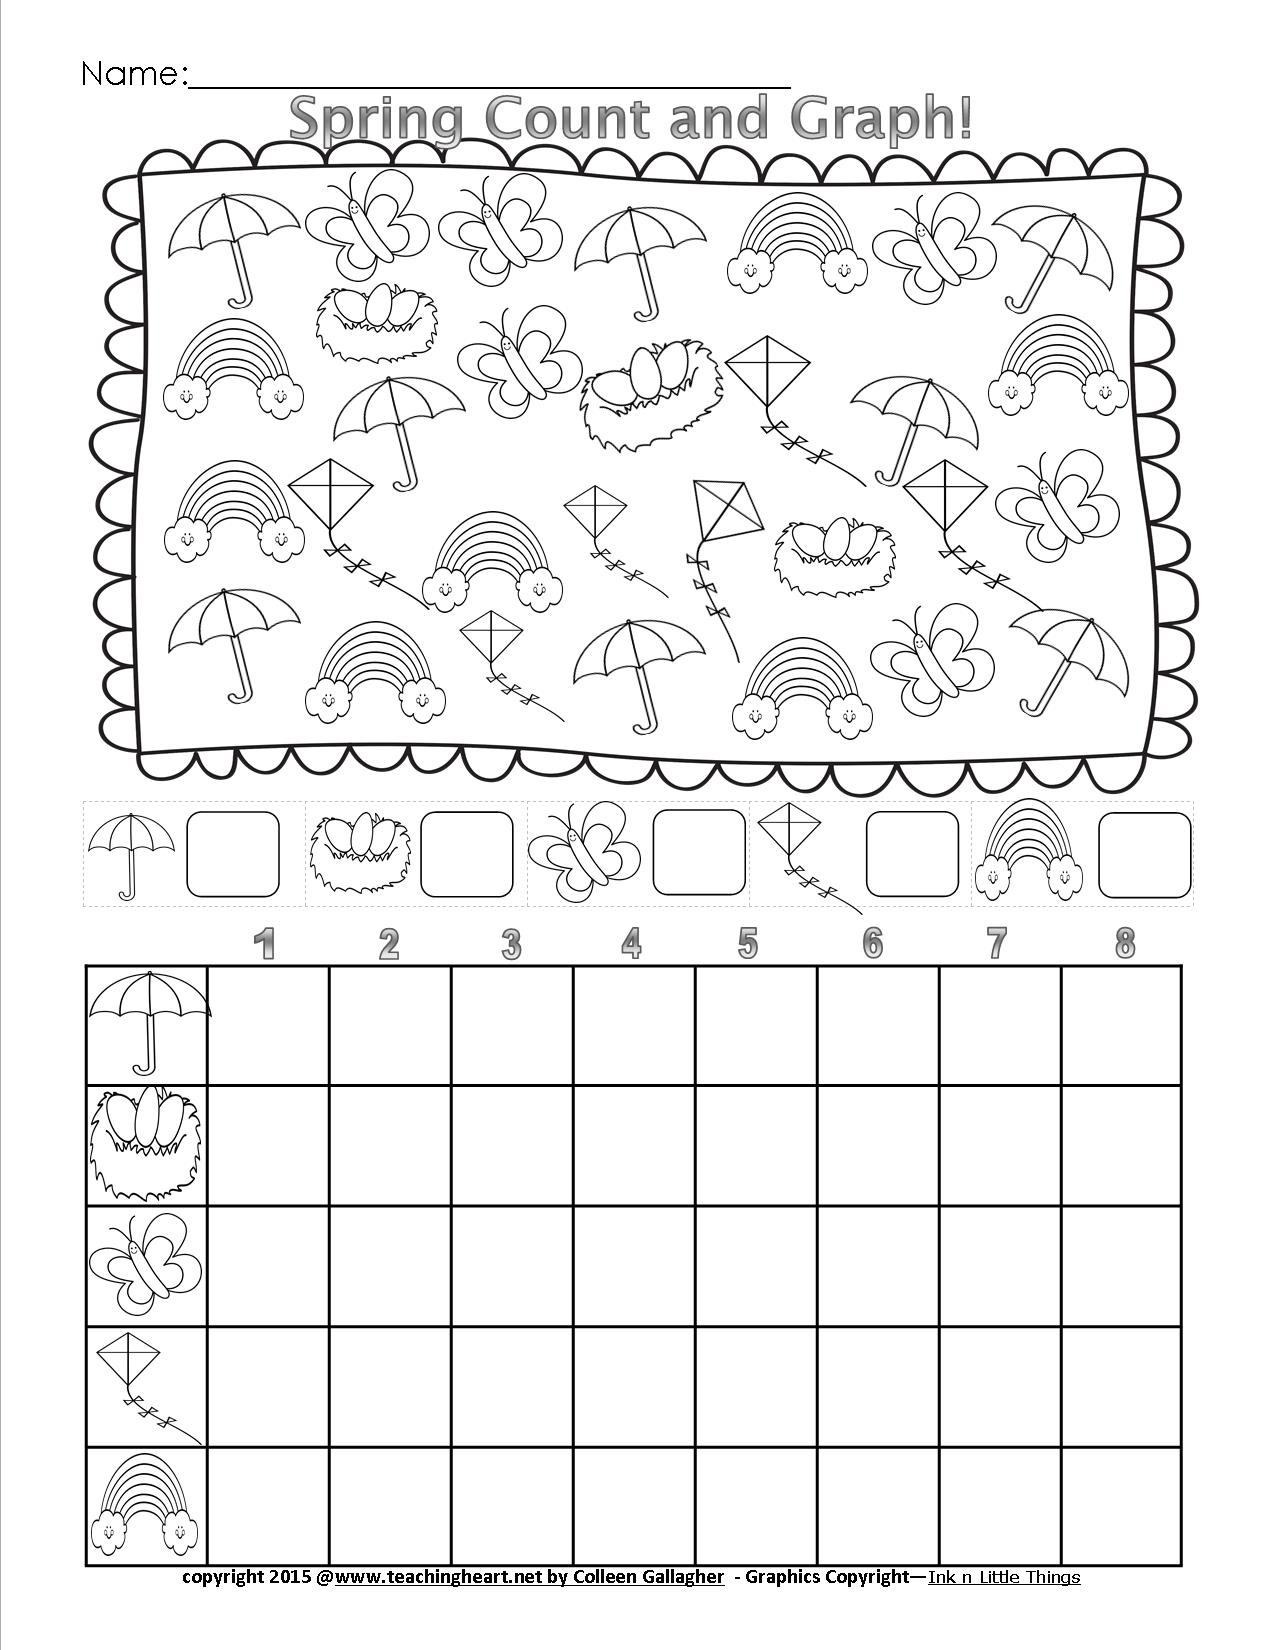 Spring Count And Graph - Free - Teaching Heart Blog Teaching Heart Blog - Free Printable Spring Worksheets For Kindergarten